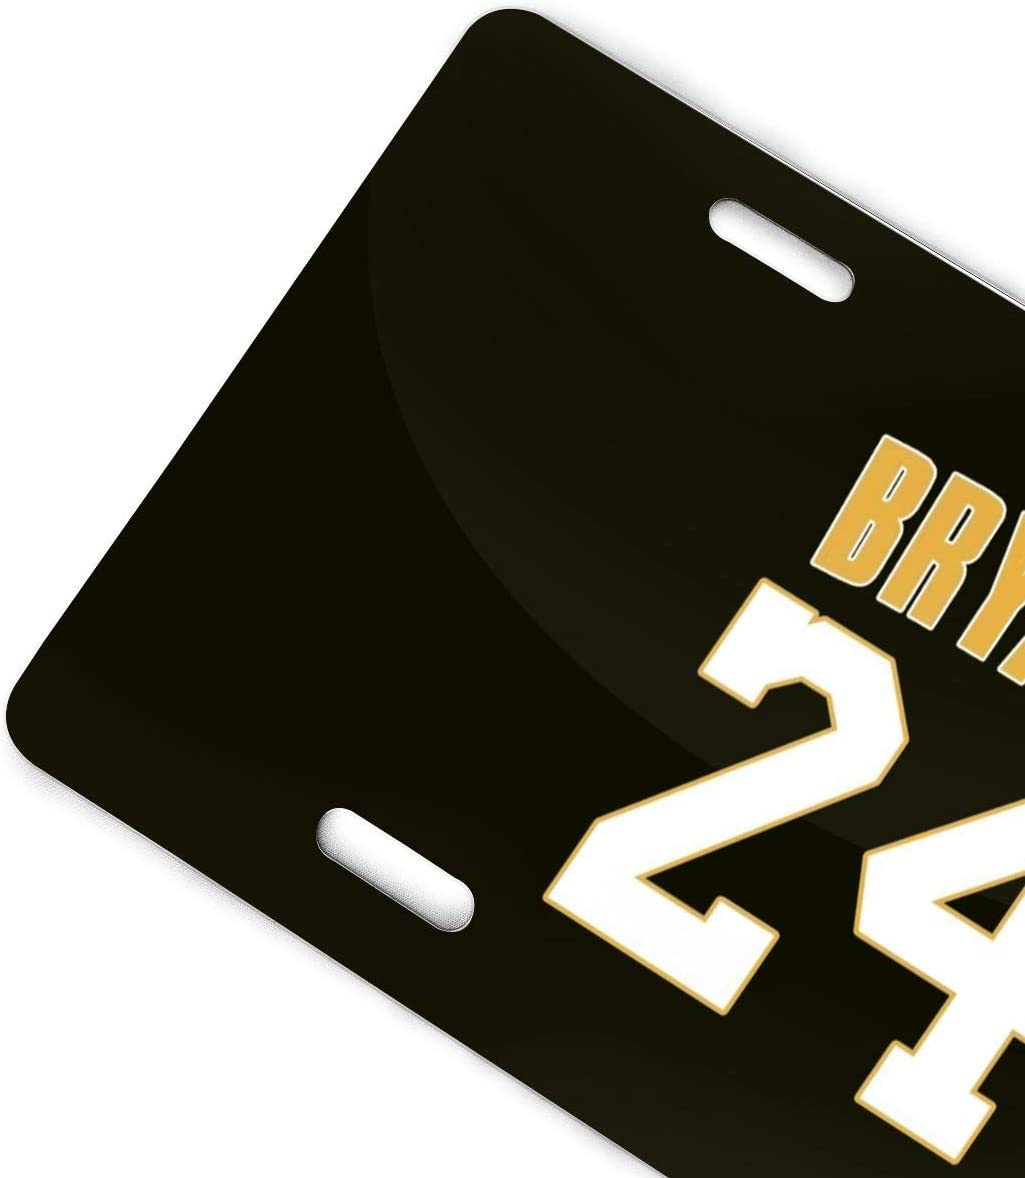 6X12 Front License Plate HK37USFEI License//Vanity Plate,Ko-be 24 Bry-ant Automobile